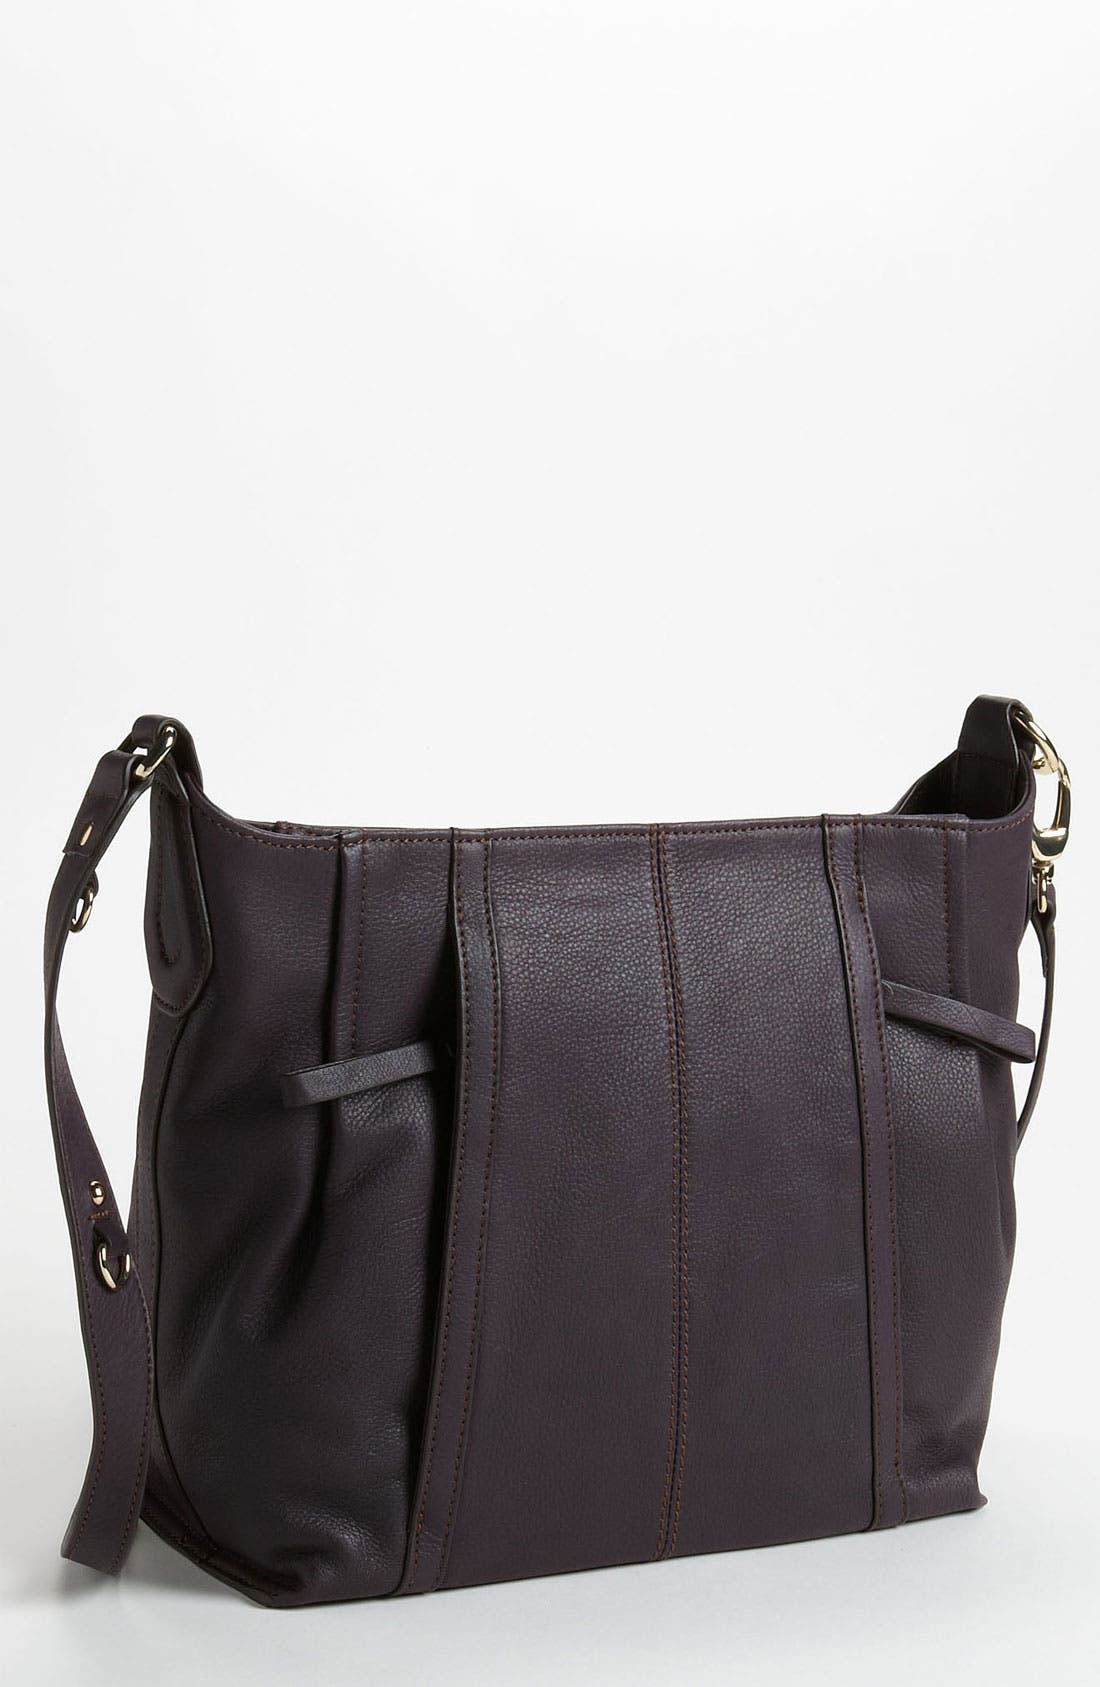 Main Image - Perlina 'Paulina' Leather Bucket Bag